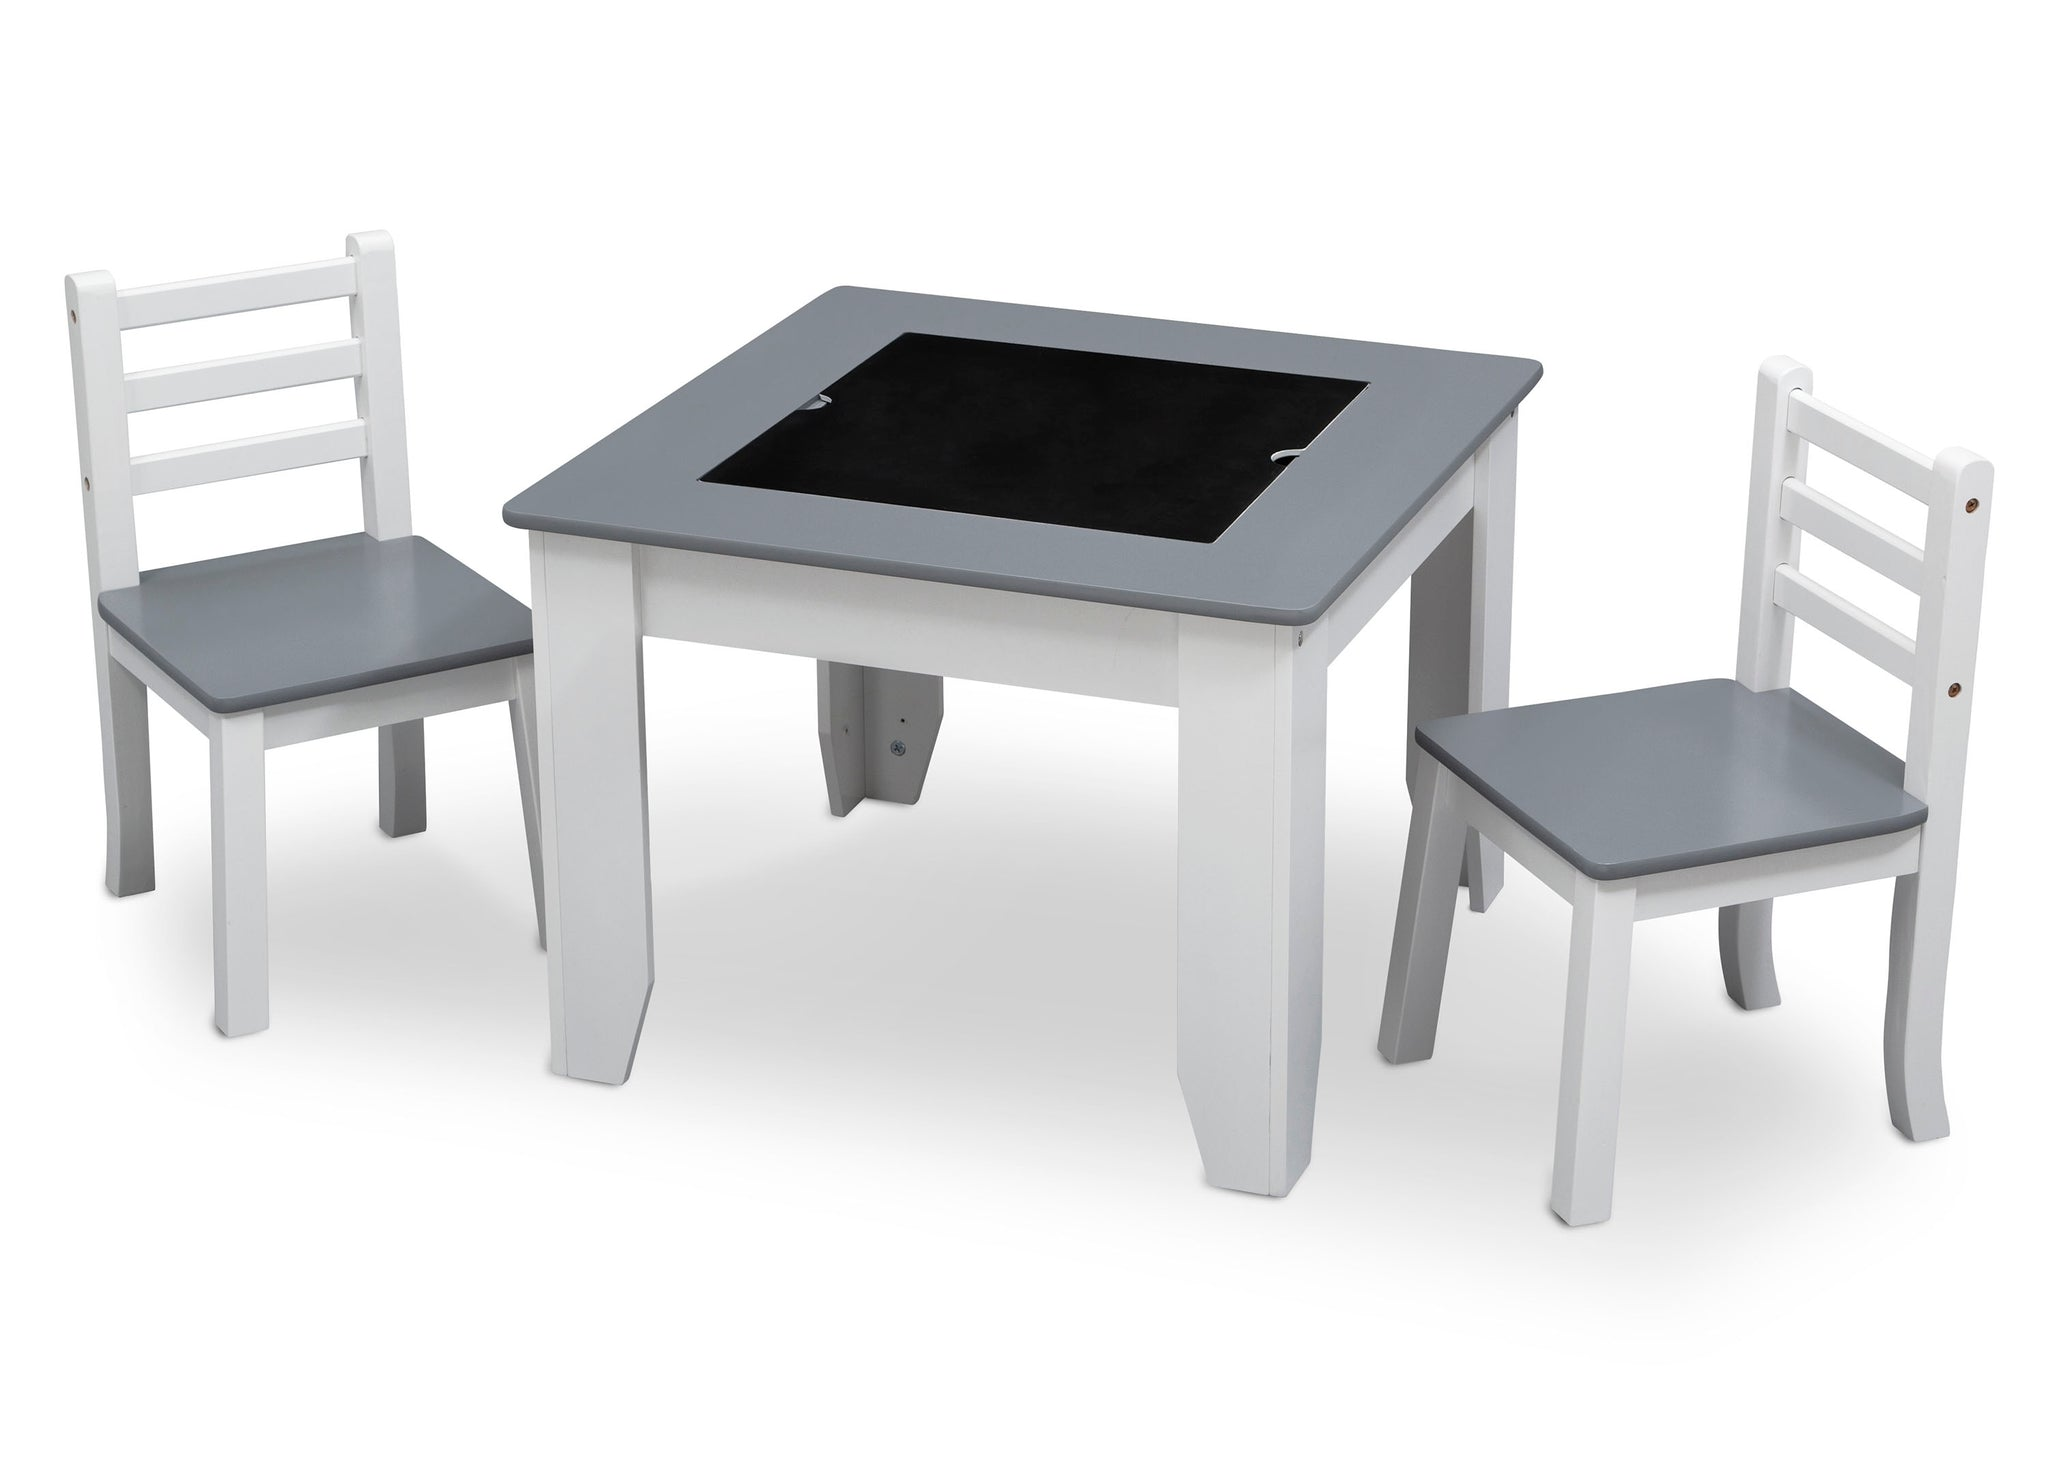 Delta Children Light Grey and White (1176) Chelsea Chair Set with Table Left View Chalkboard a3a